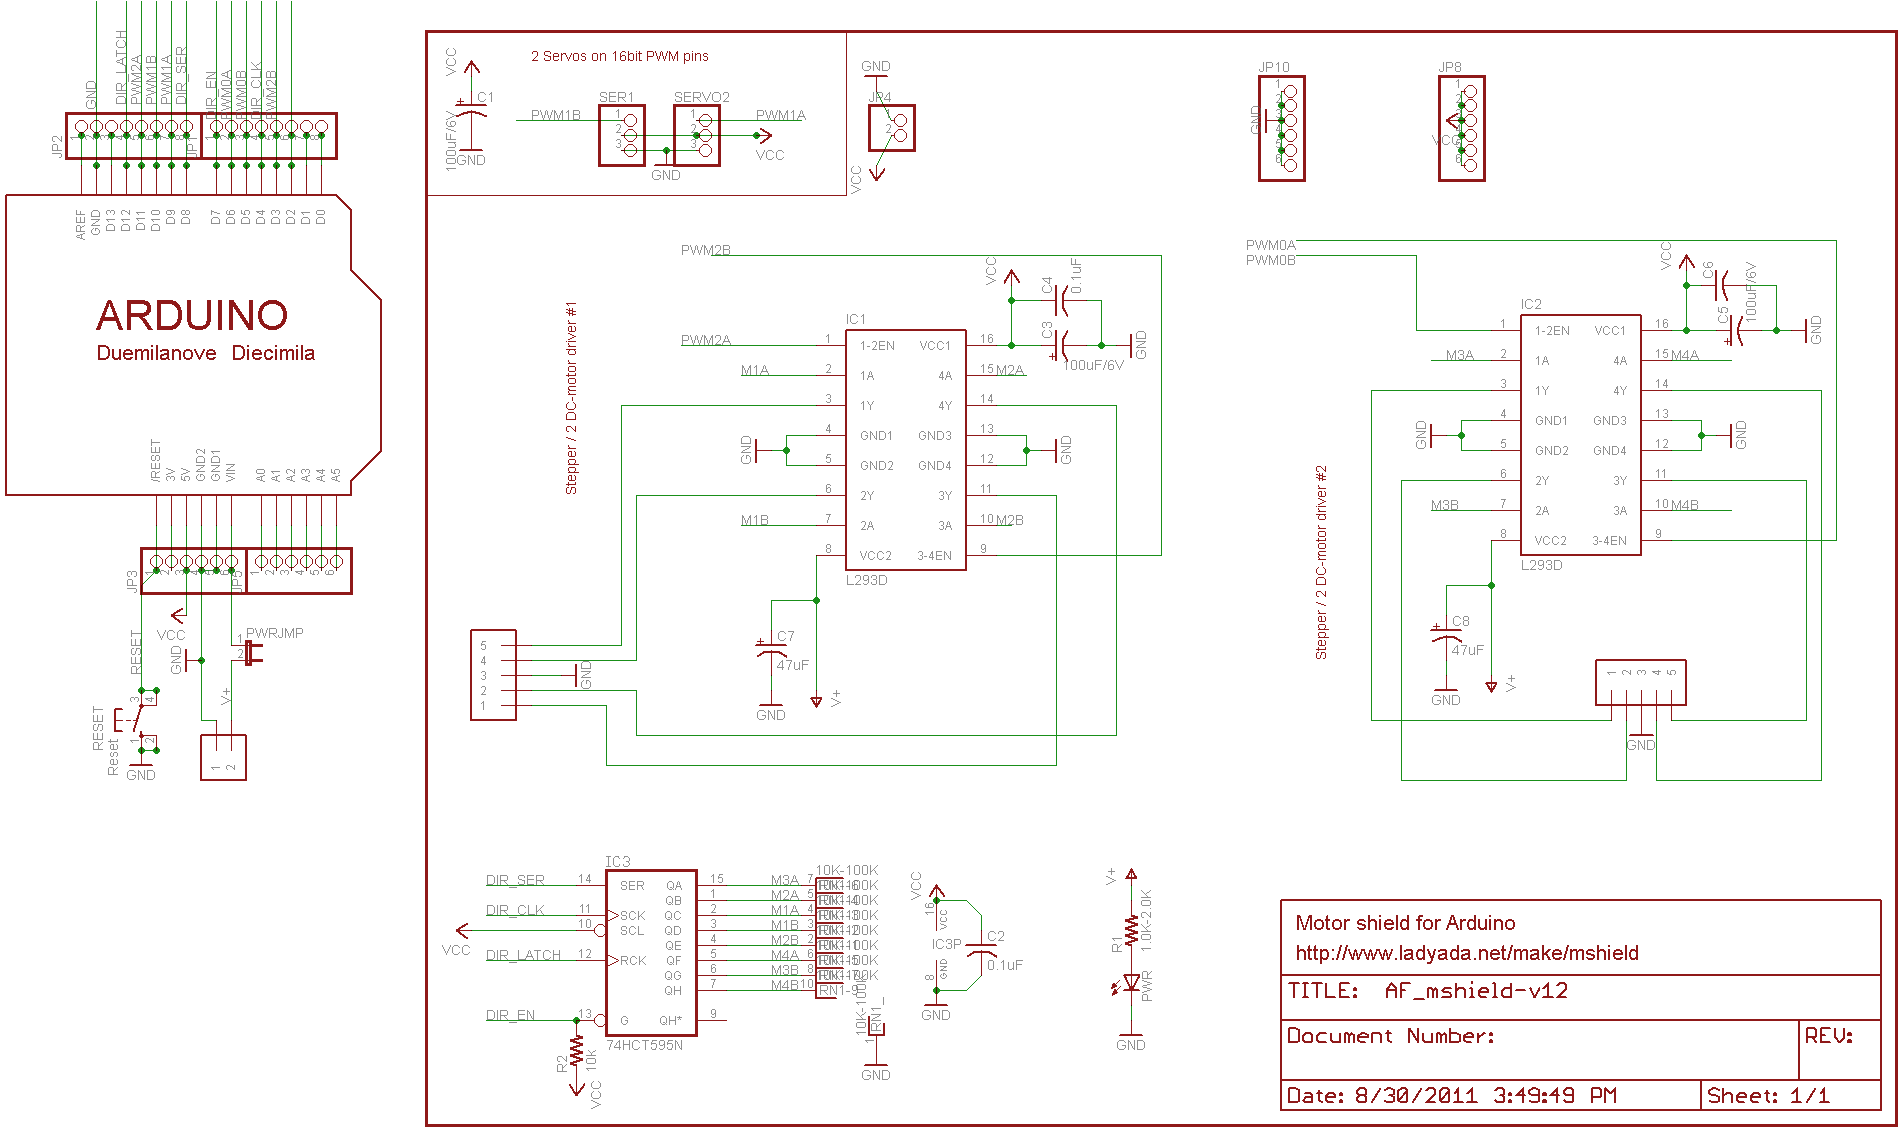 arduino mega 2560 schematic html with 511 Shield De Motores Para Arduino Shd Mstepper on Index together with Core407z Stm32f4 Development Board also Wiring Diagram Esc And Arduino together with Cnc Caseira in addition Elab Peers Mega 2560 3 2 Tft Lcd Touch Tft Mega Shield.